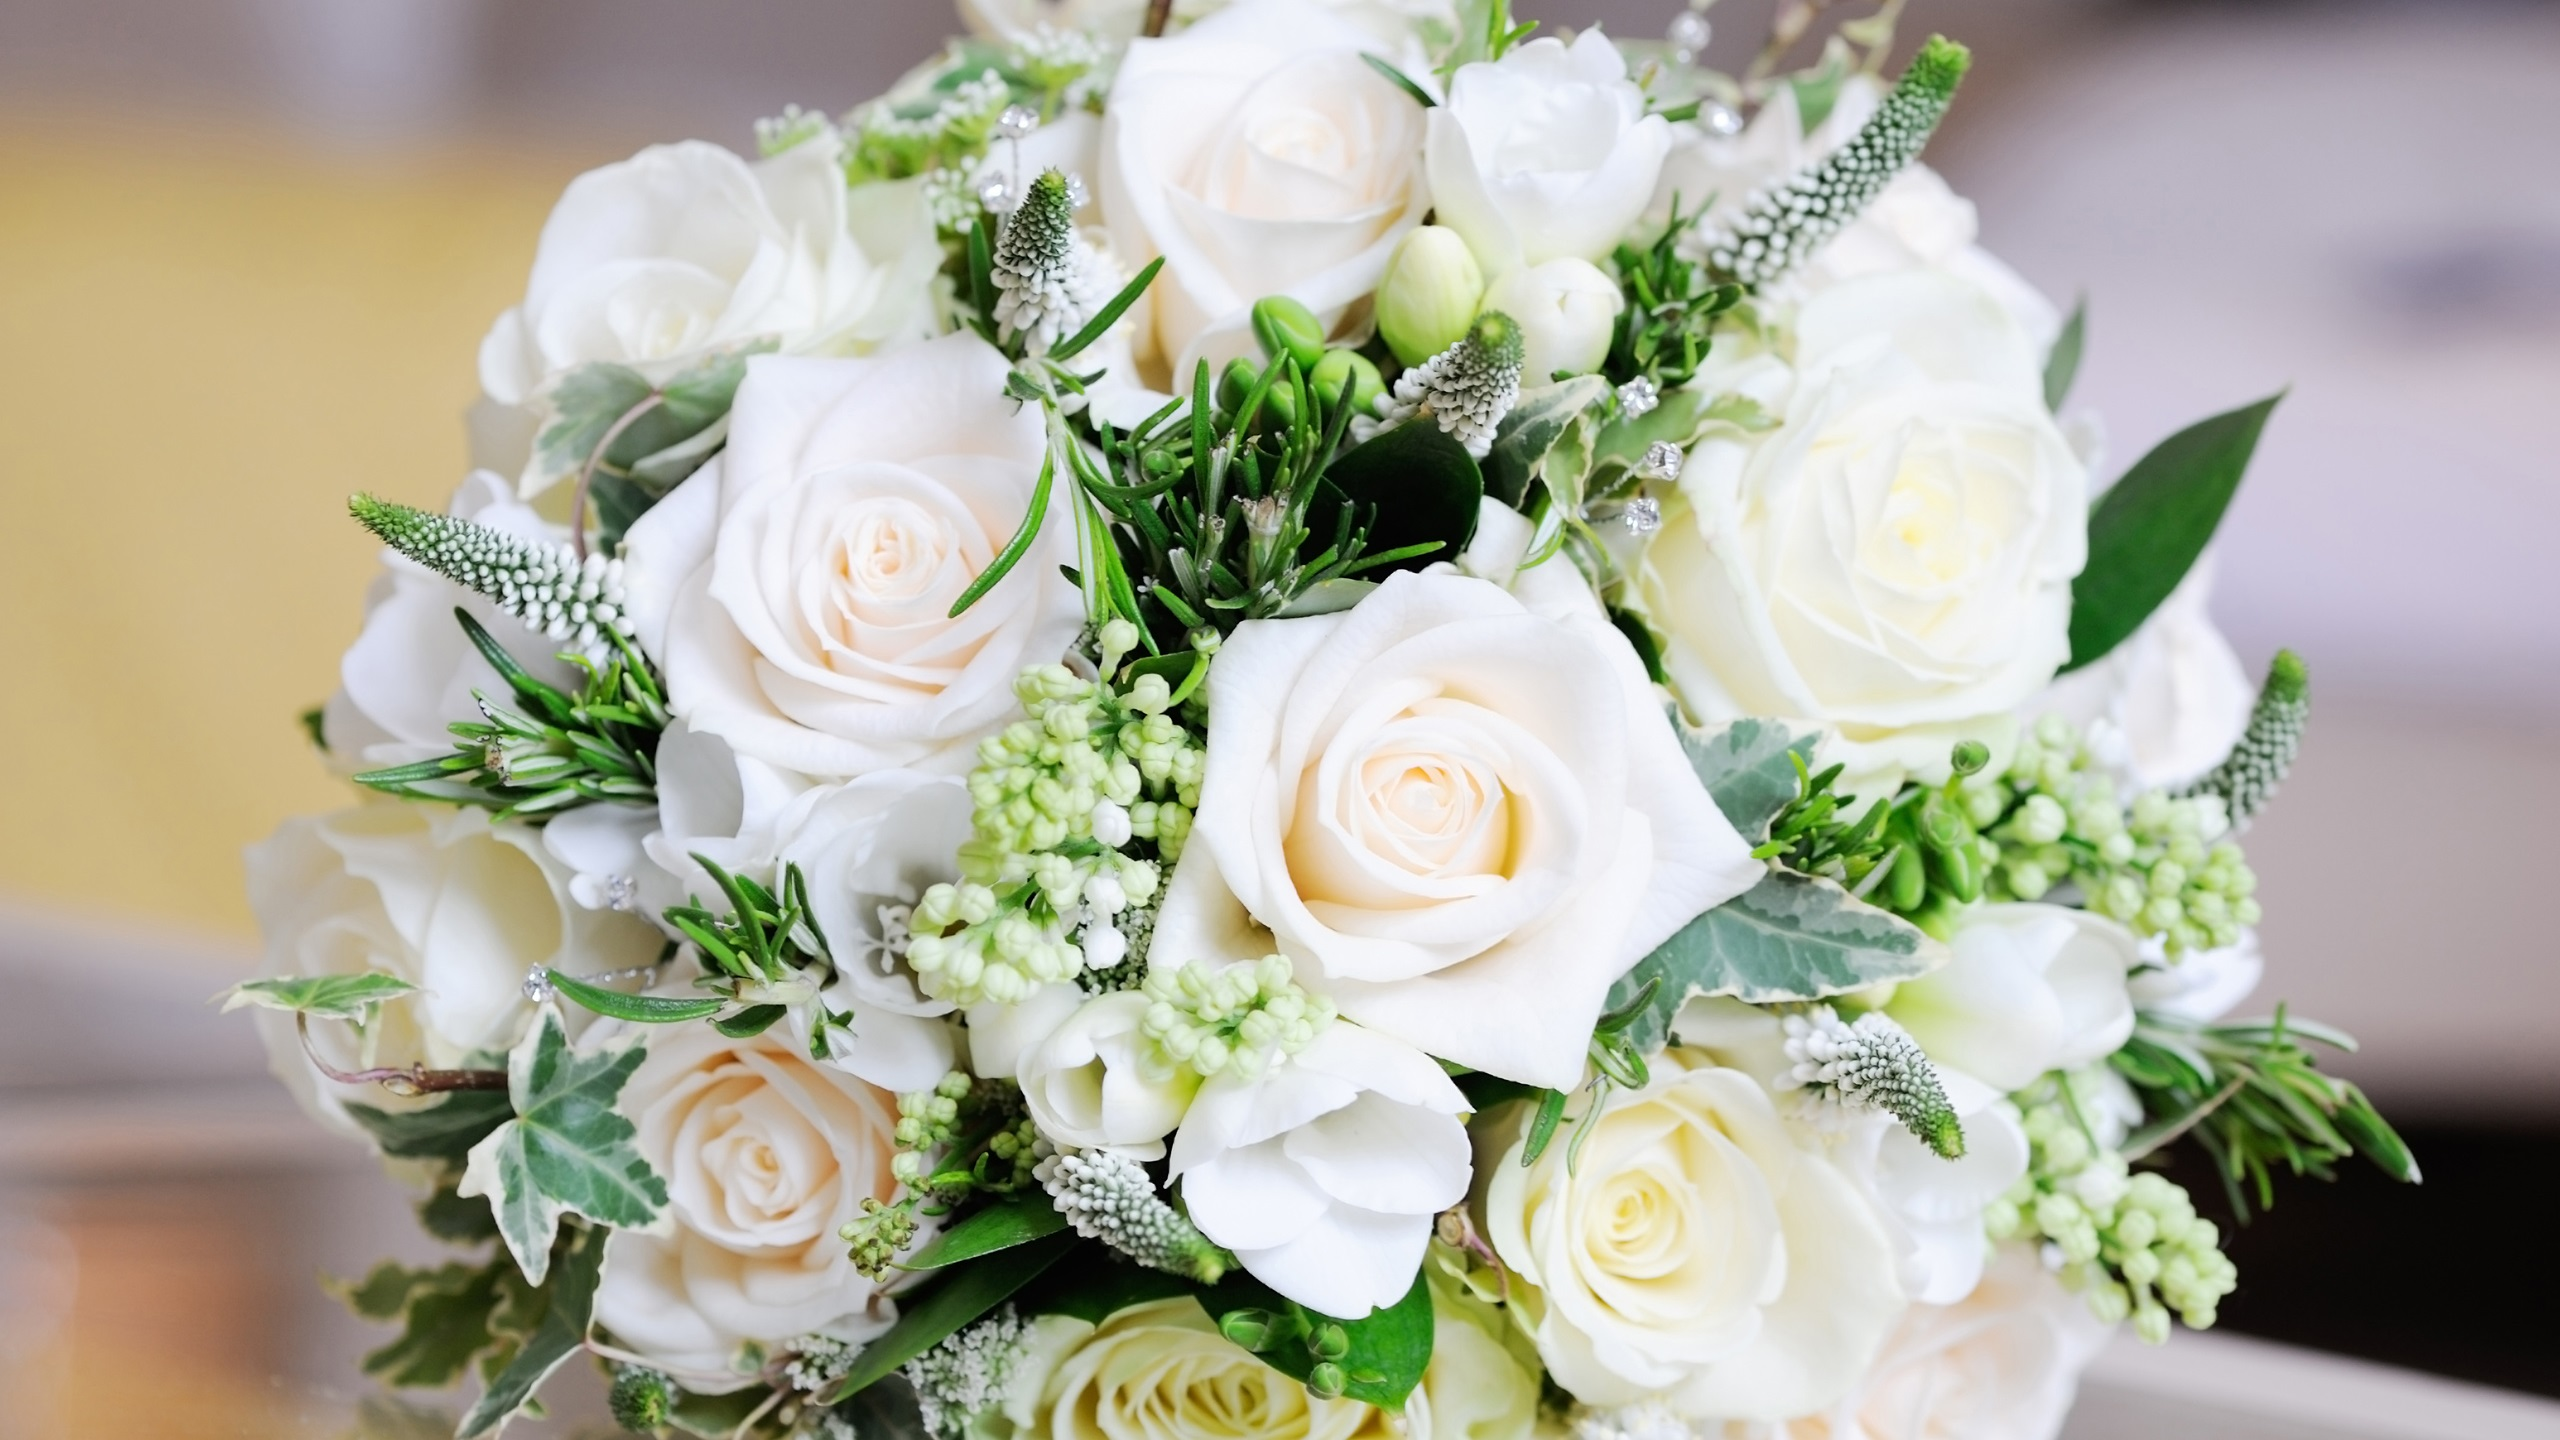 Wallpaper White Bouquet Rose Flowers Leaves 2560x1600 Hd